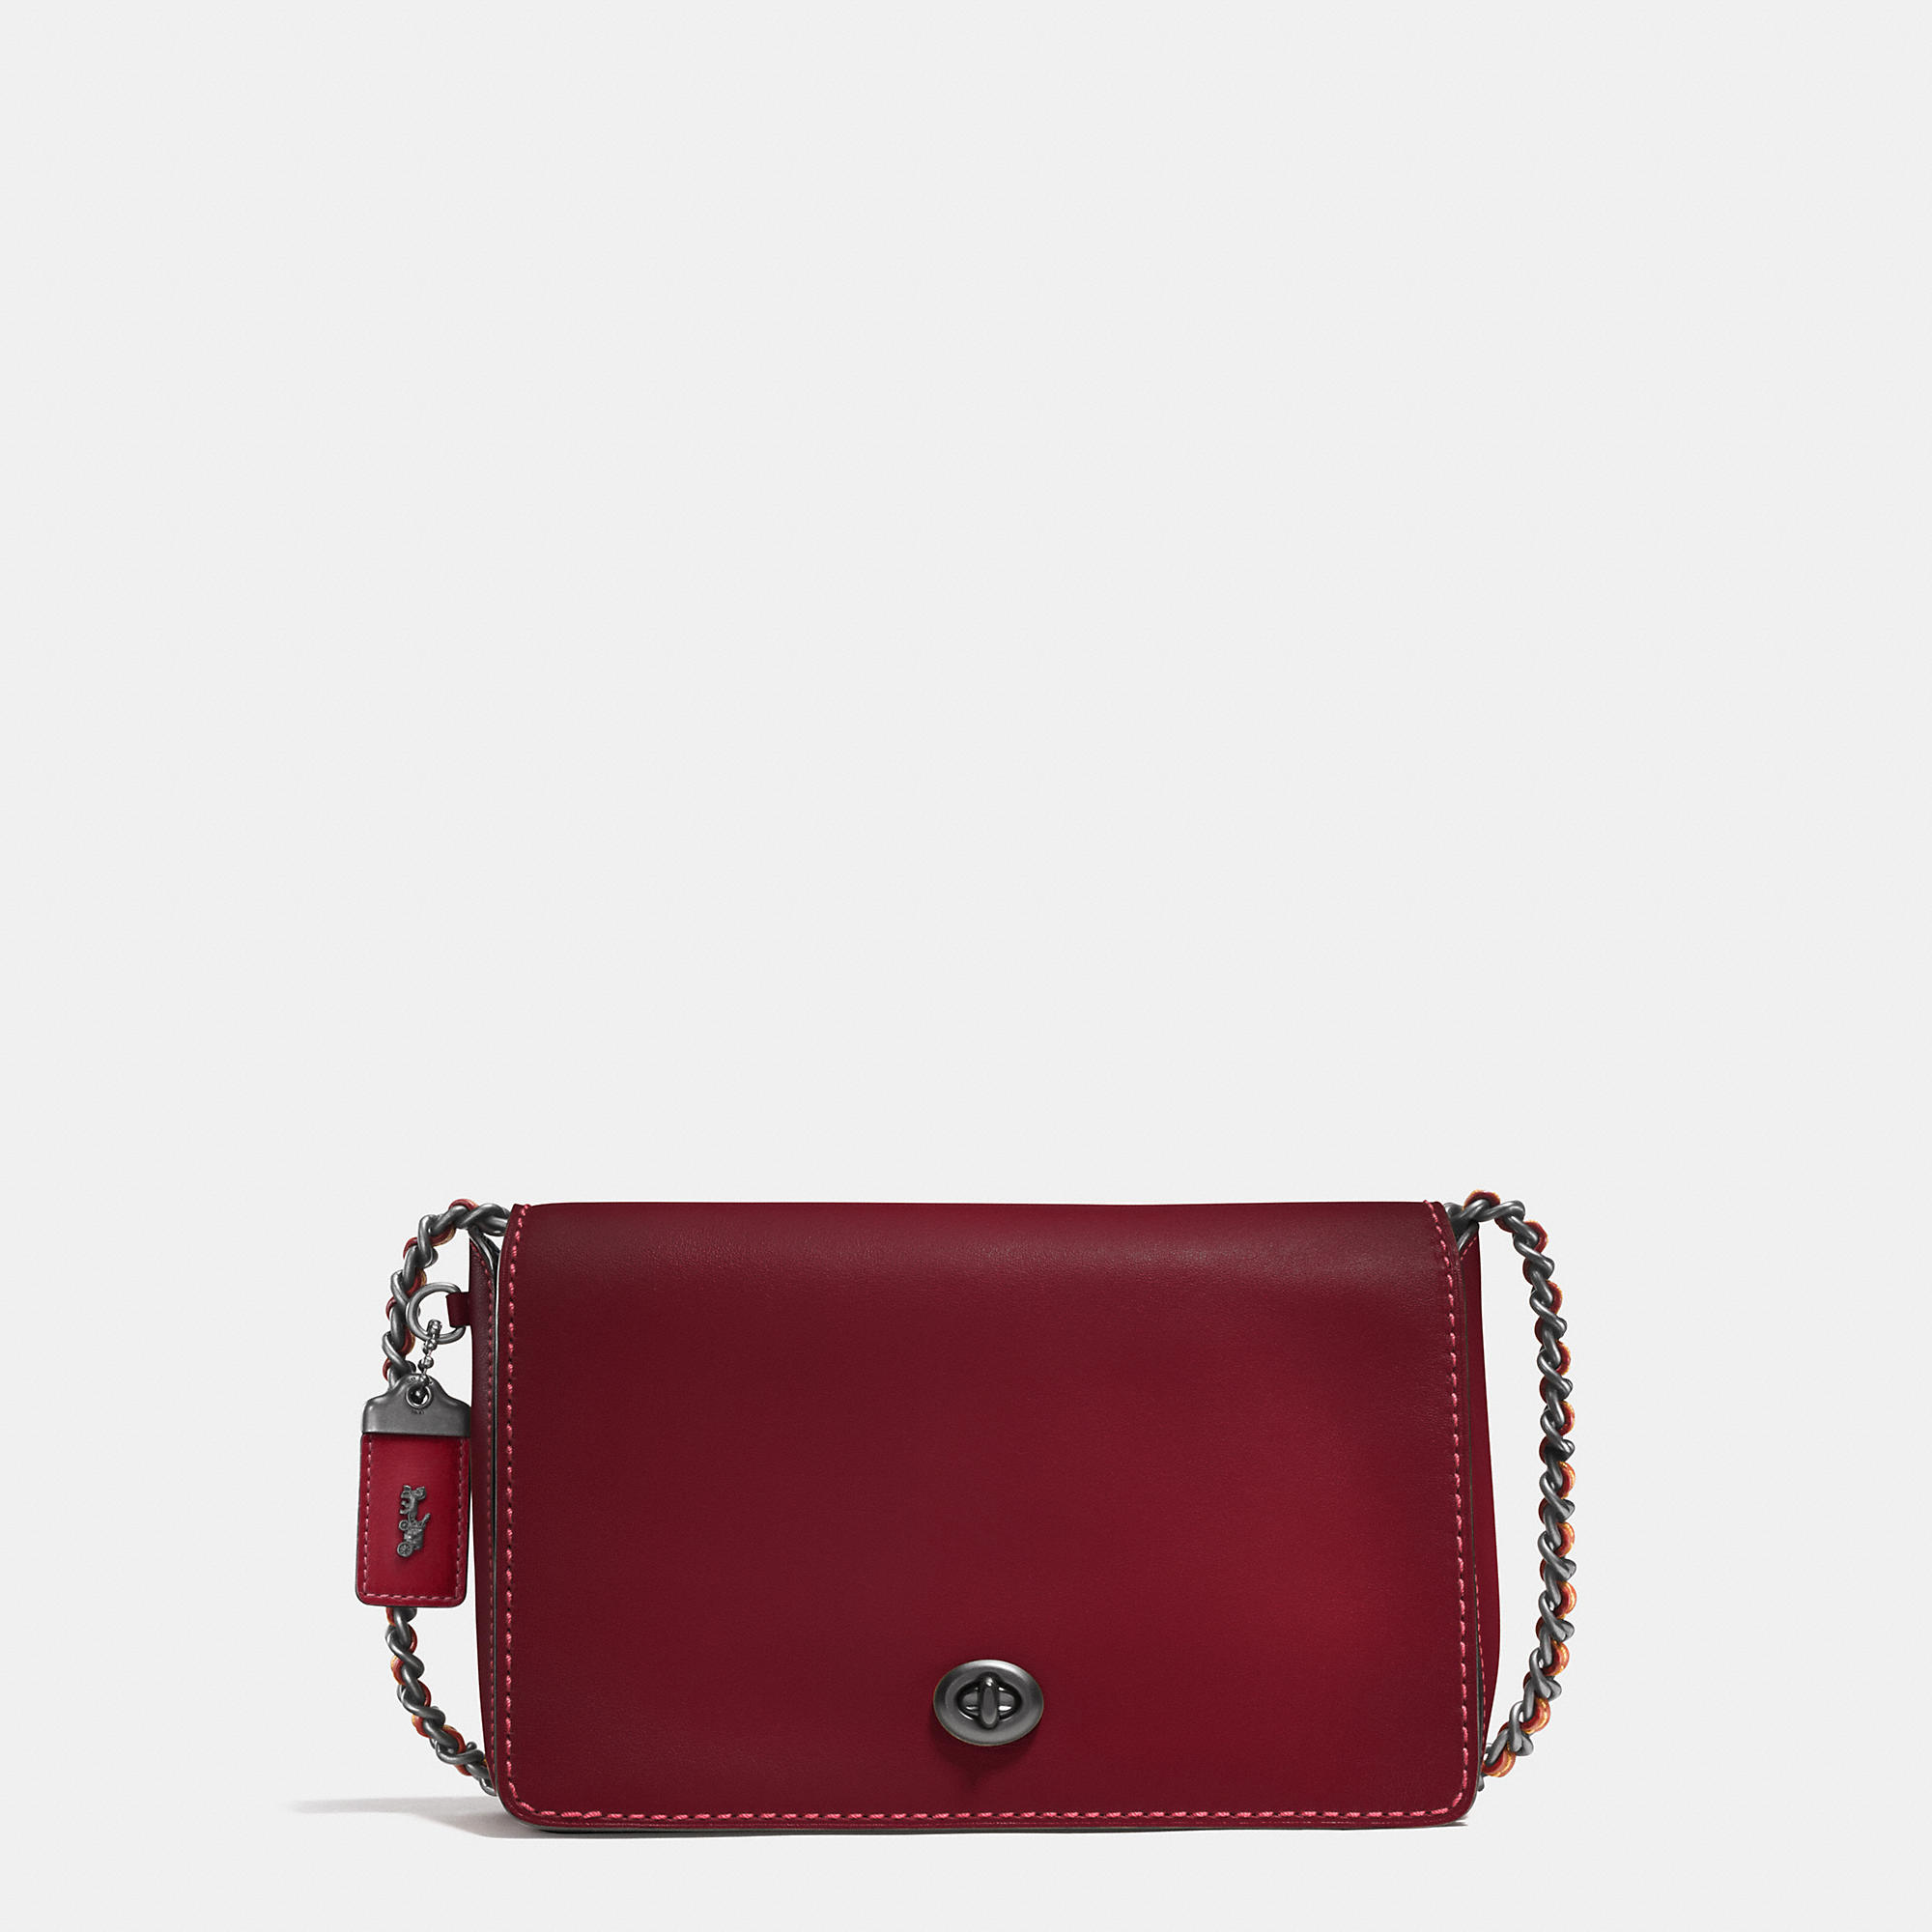 Coach Dinky 24 In Glovetanned Leather